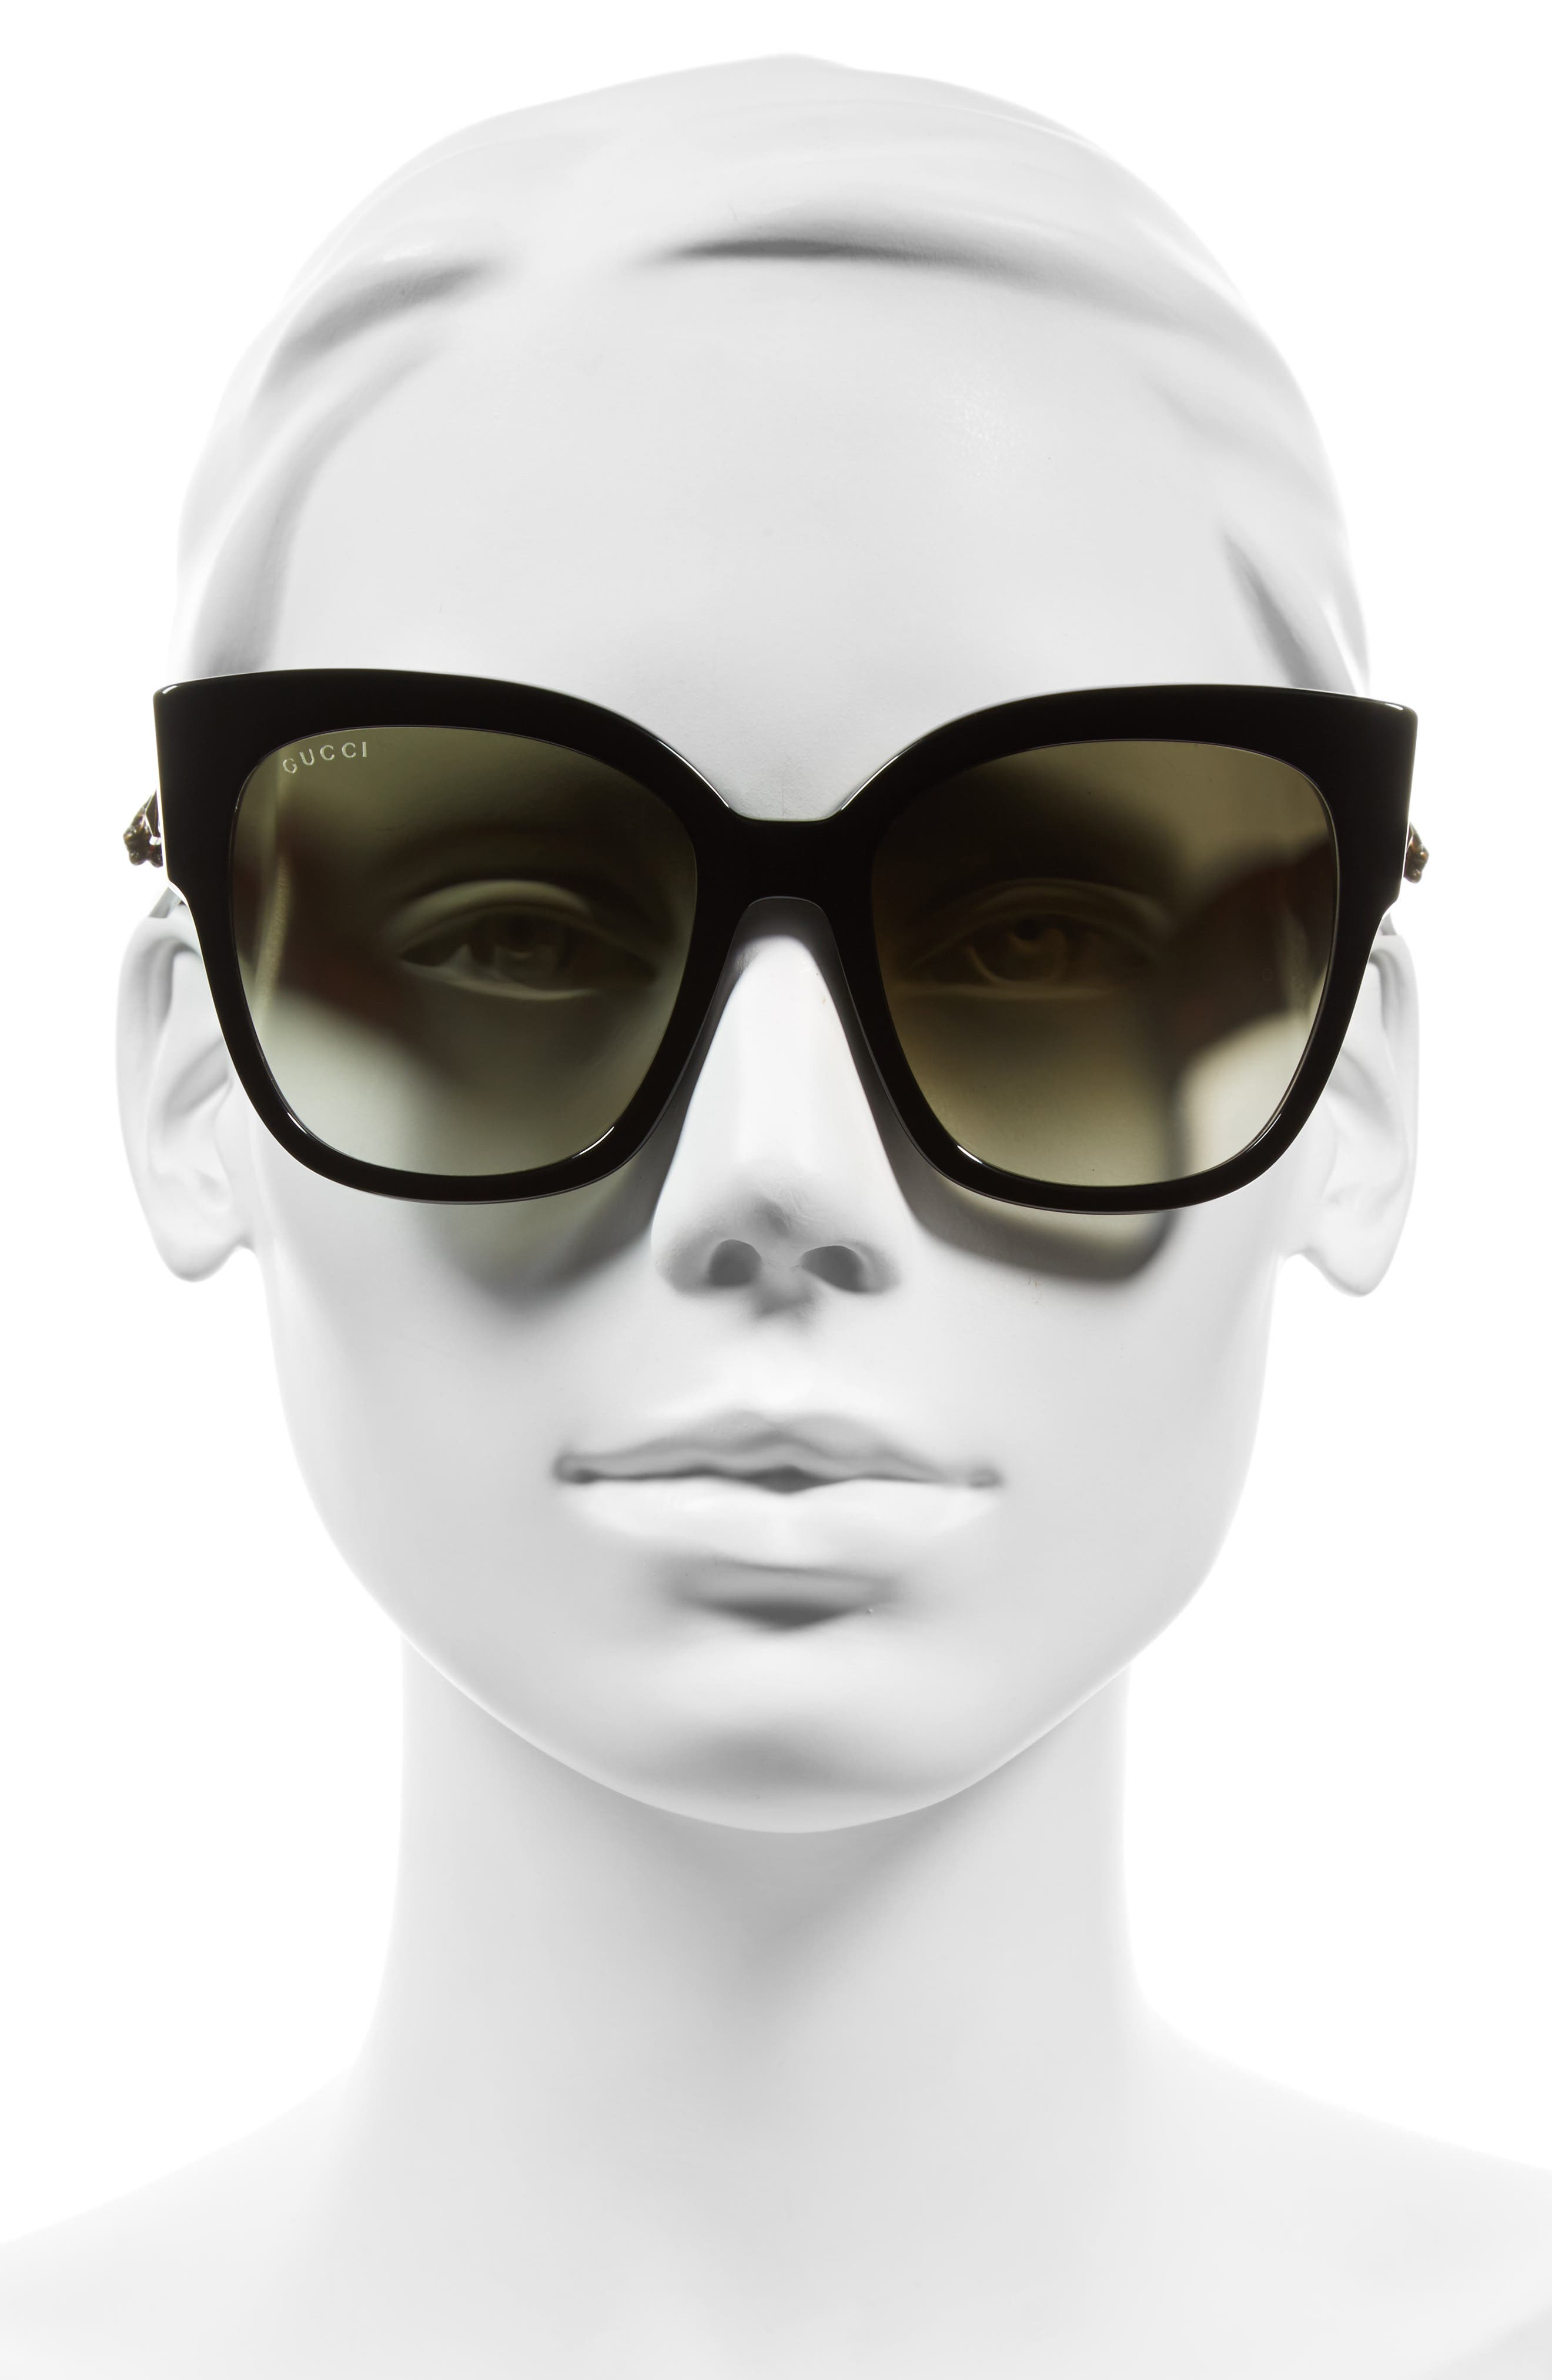 55mm Butterfly Sunglasses,                             Alternate thumbnail 3, color,                             001